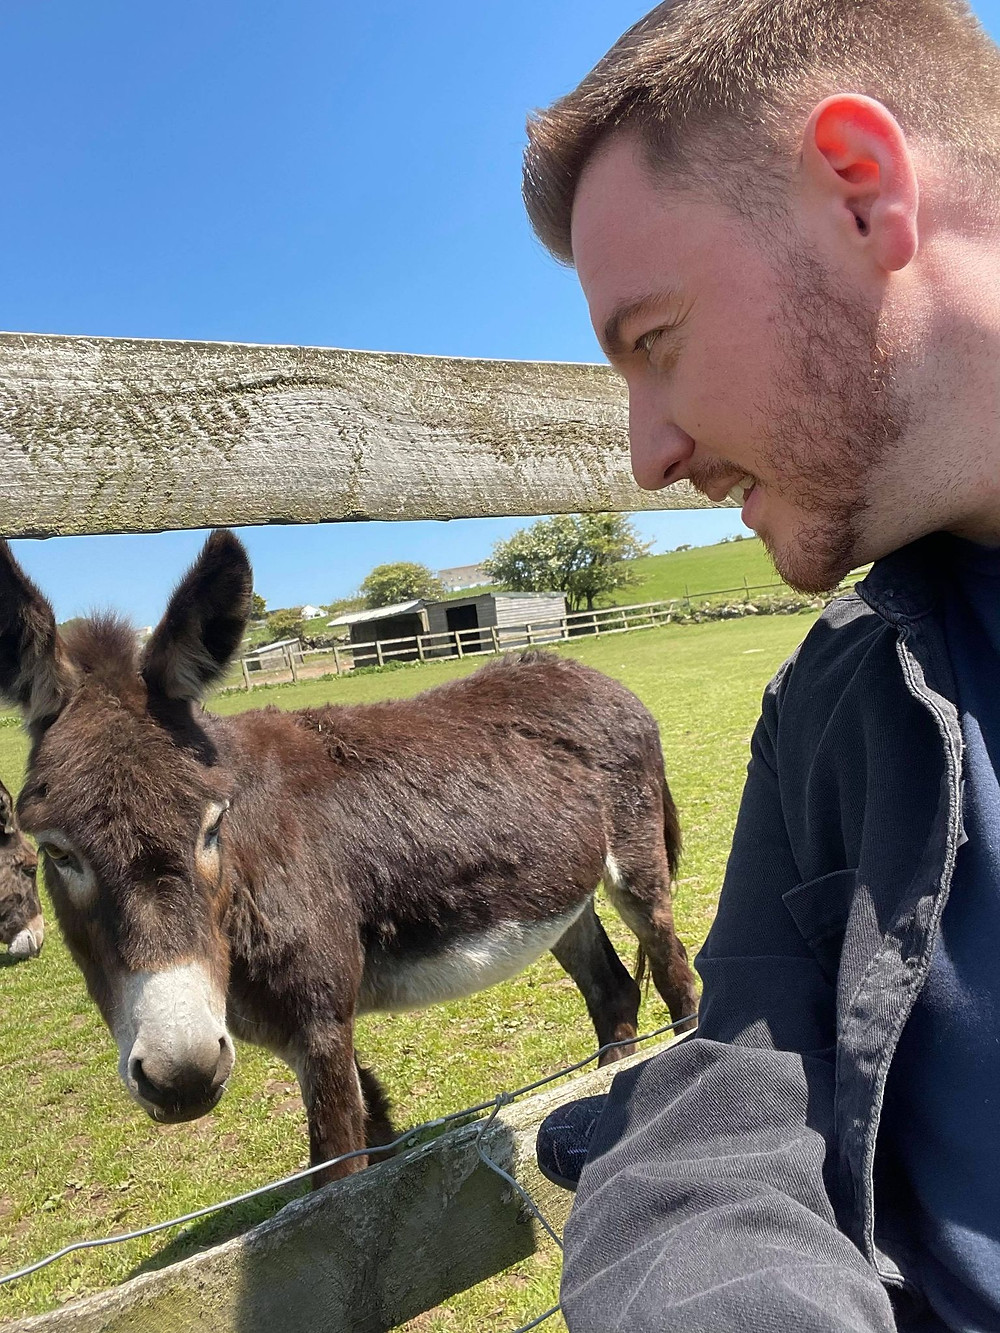 Selfie of Ross staring face to face with a donkey through the field barrier